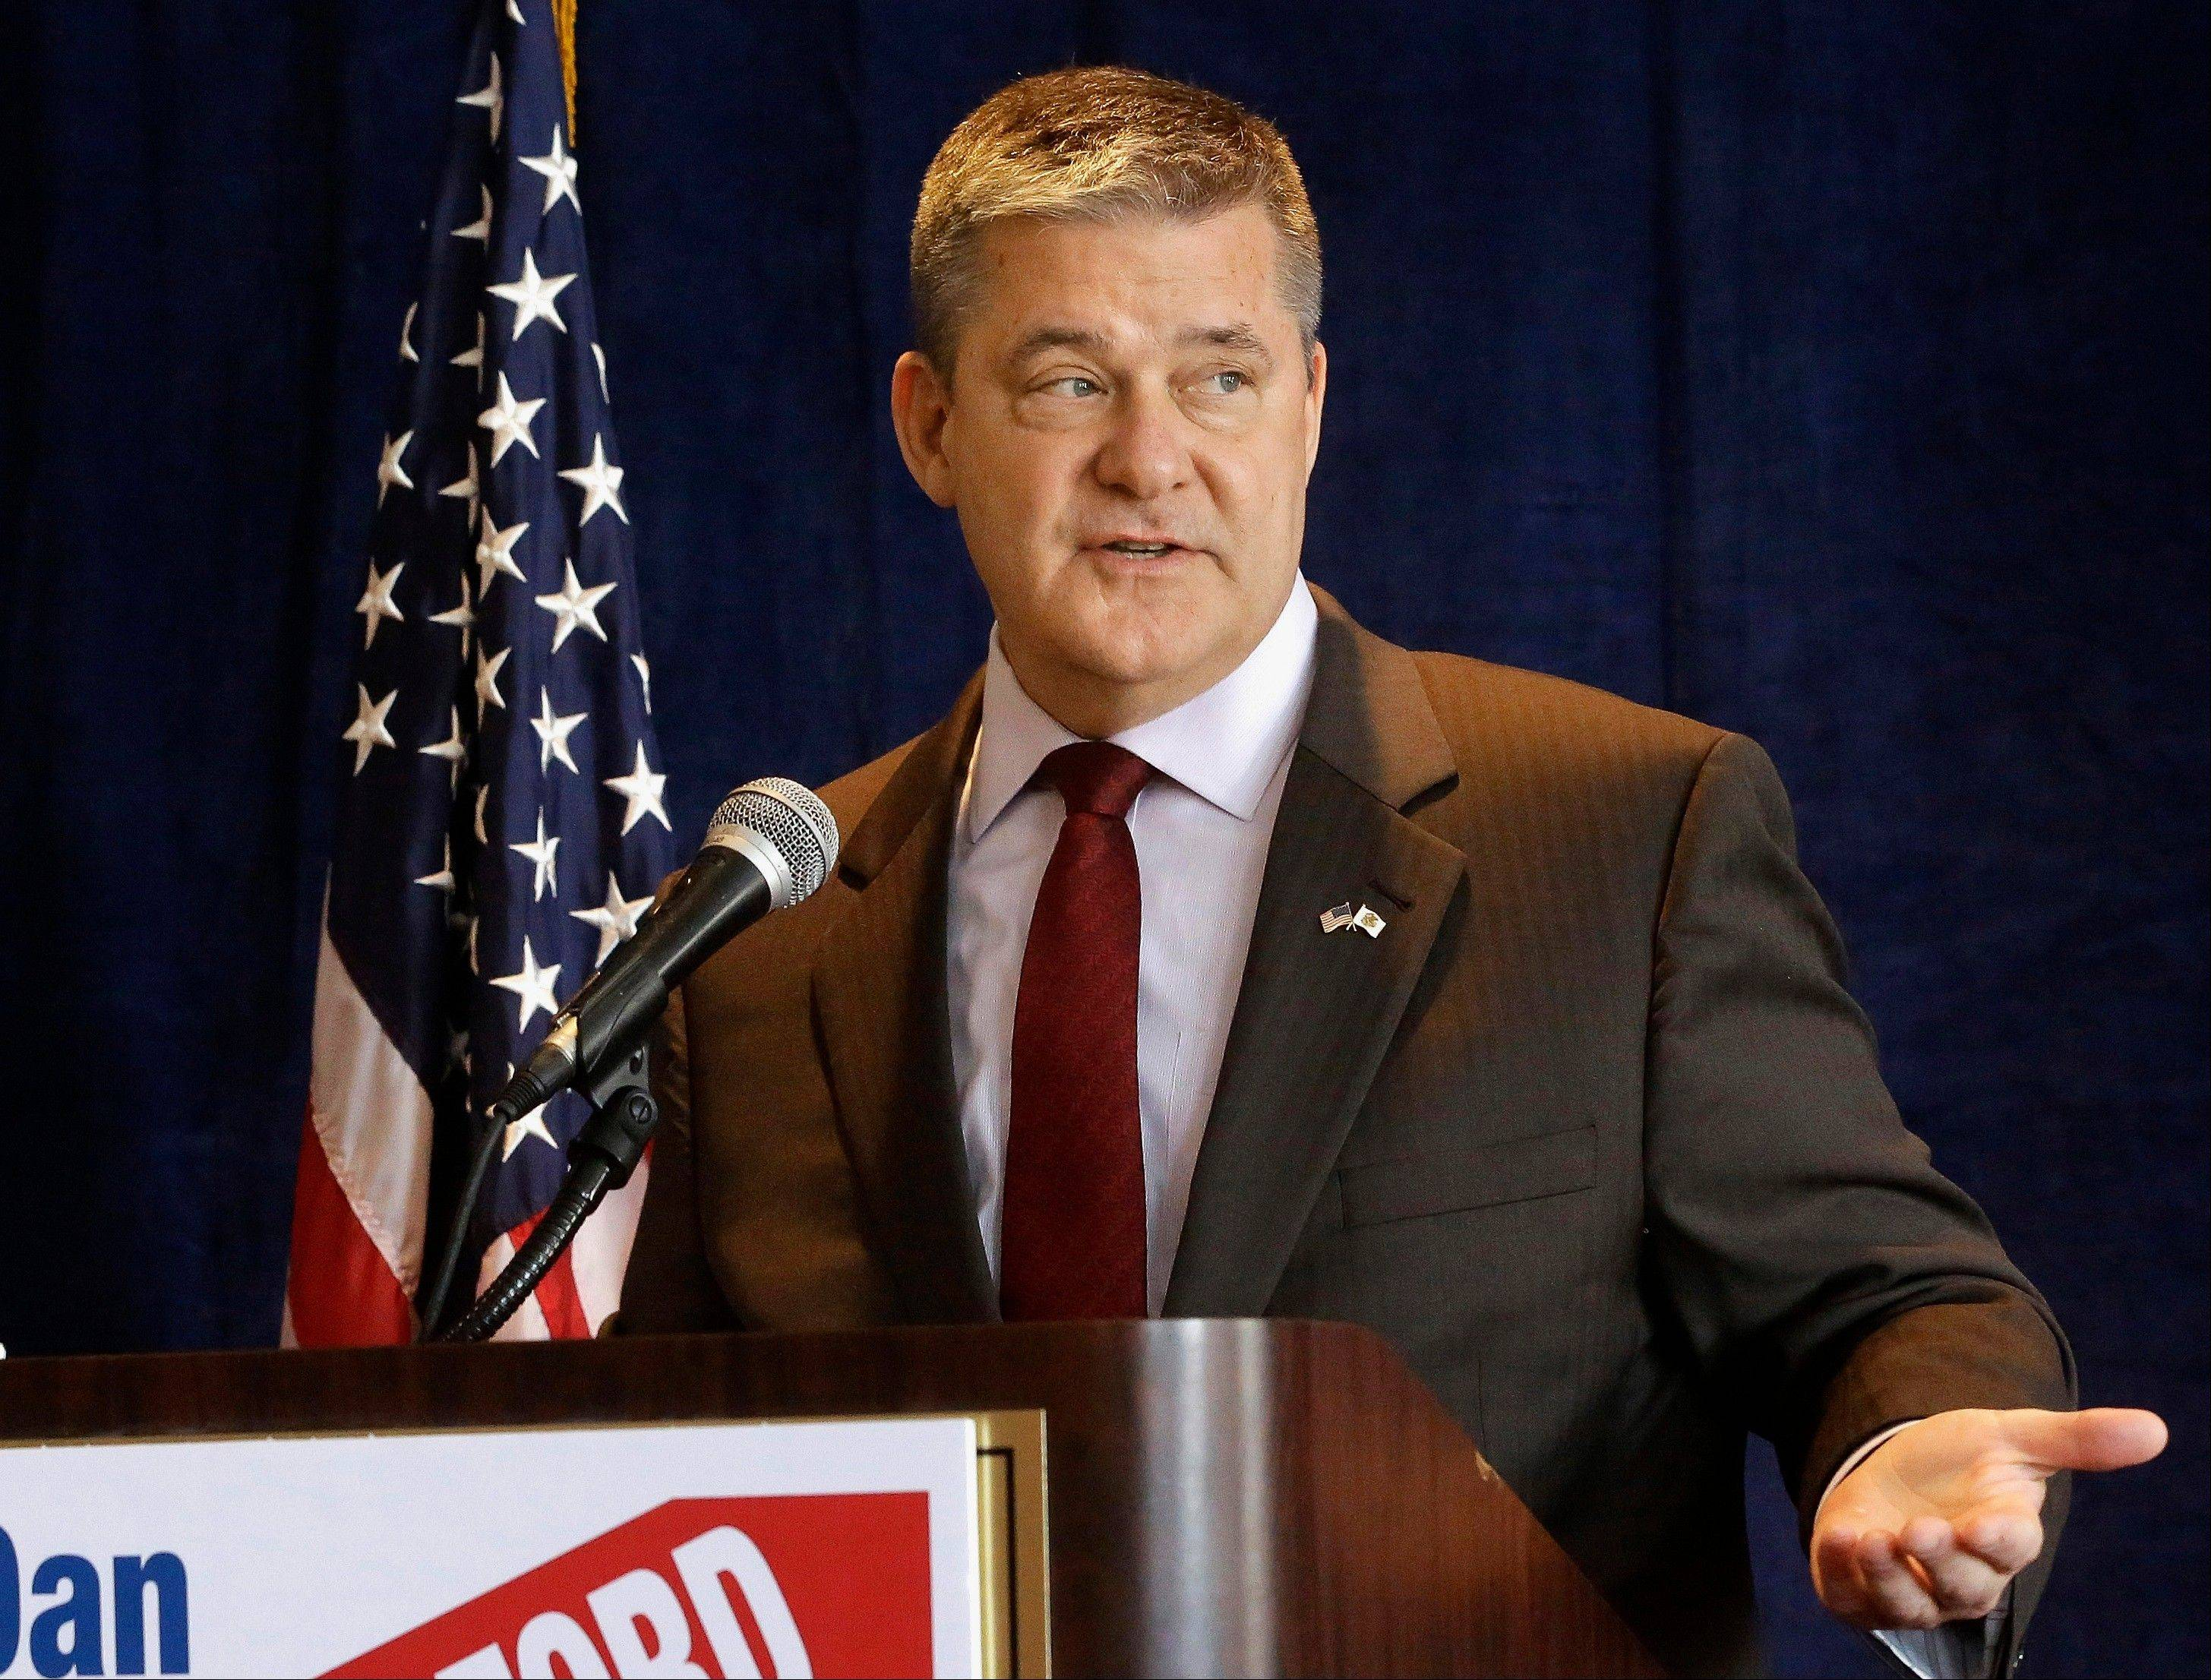 Illinois Treasurer Dan Rutherford is seeking the Republican nomination for governor in 2014.